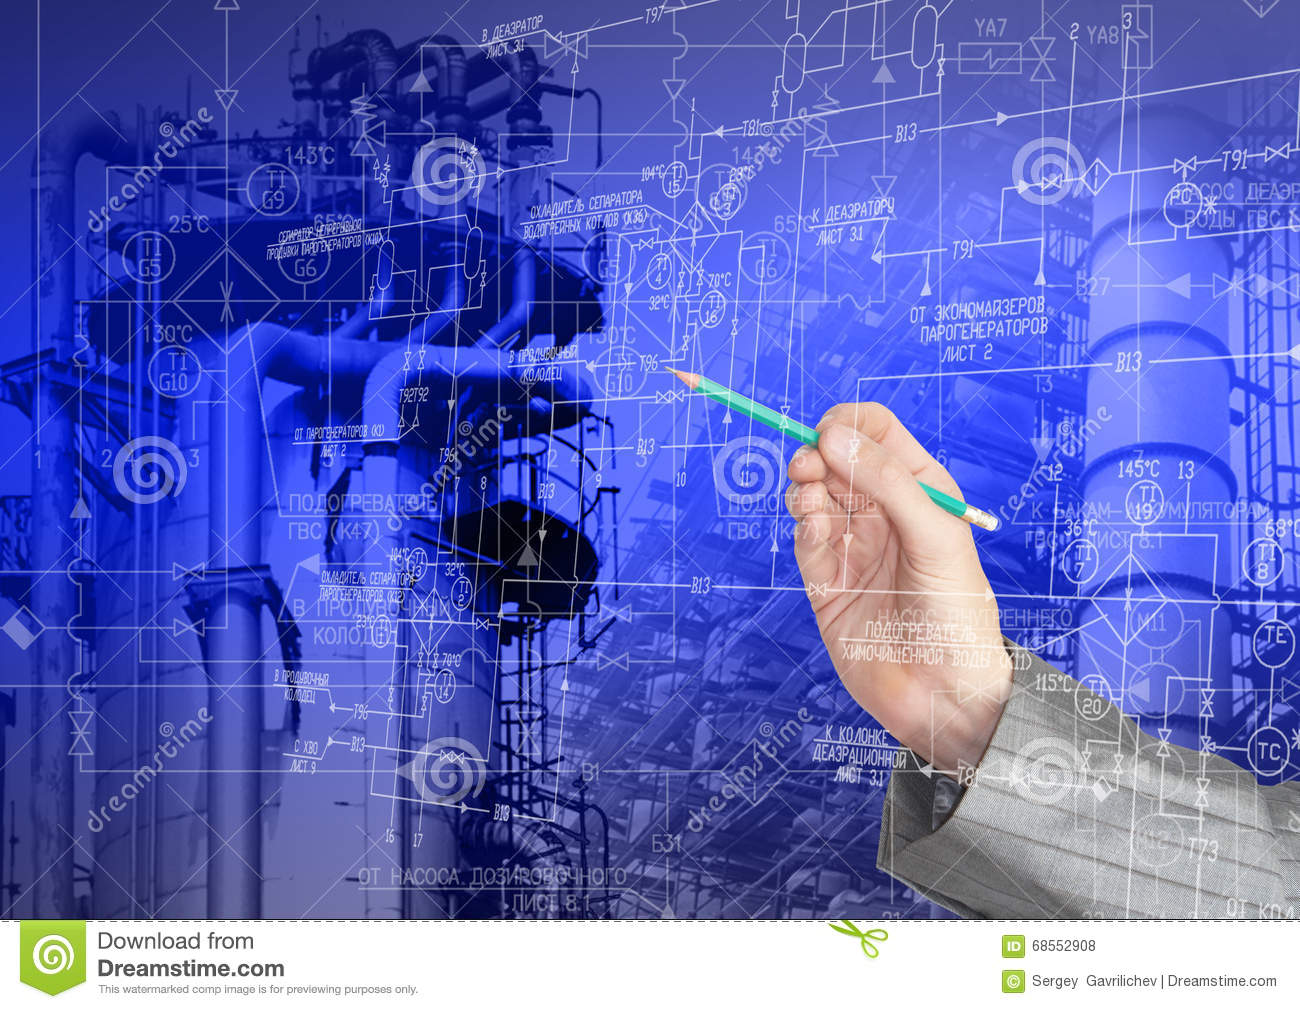 Industrial Engineering Technology Stock Photo - Image: 68552908